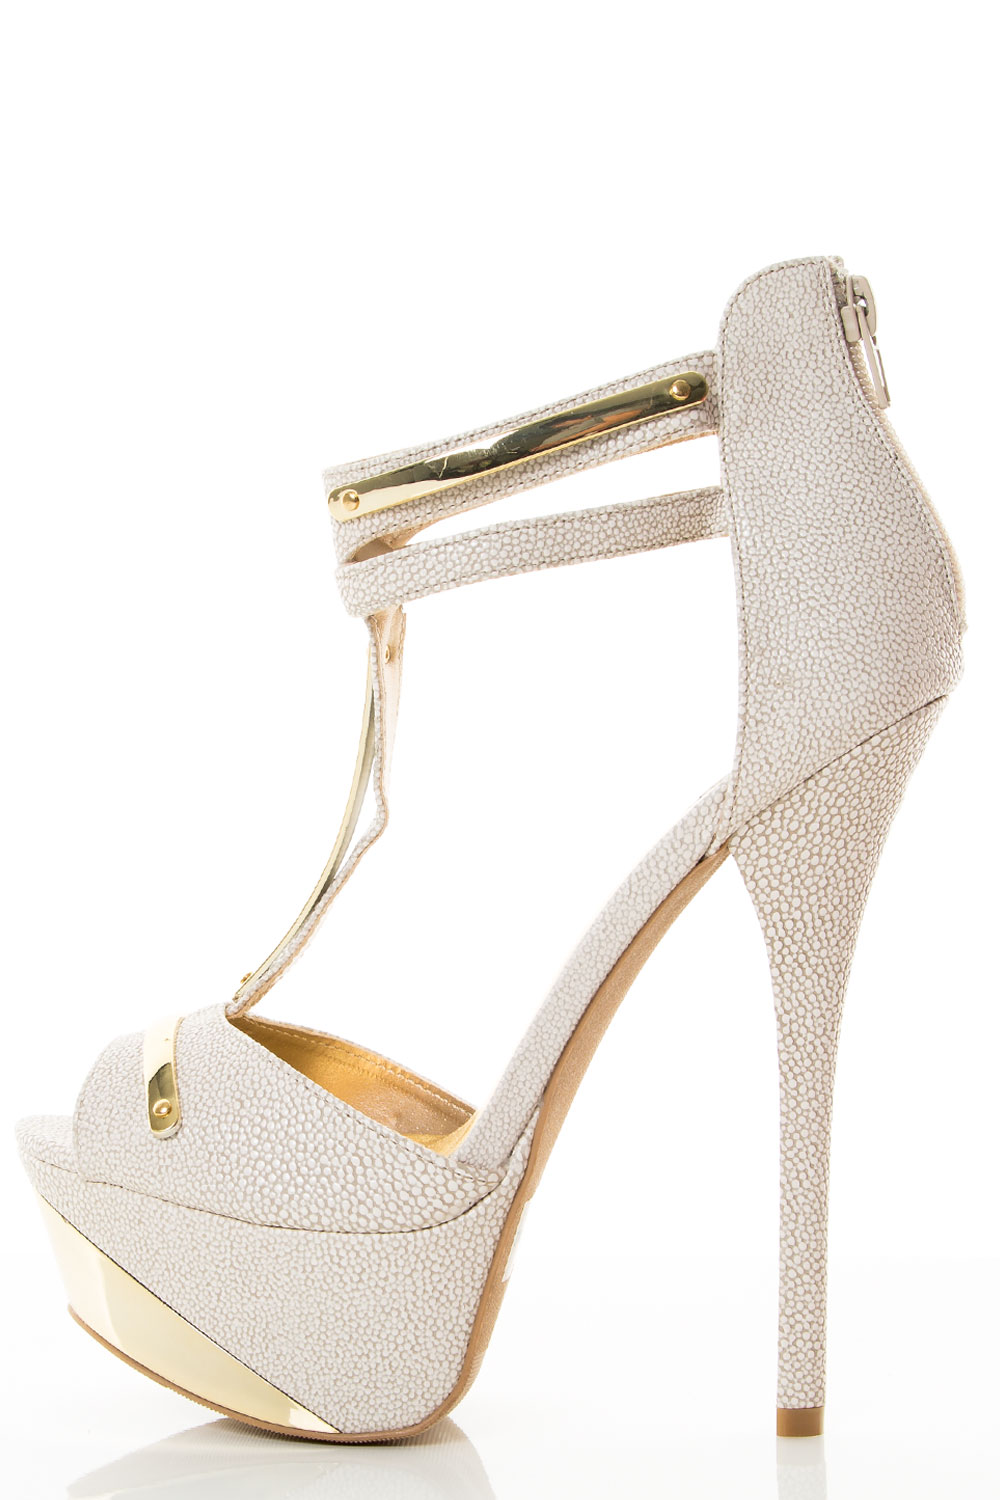 Pee Toe Gold Shield Ankle Strap Platform Pump Shoes